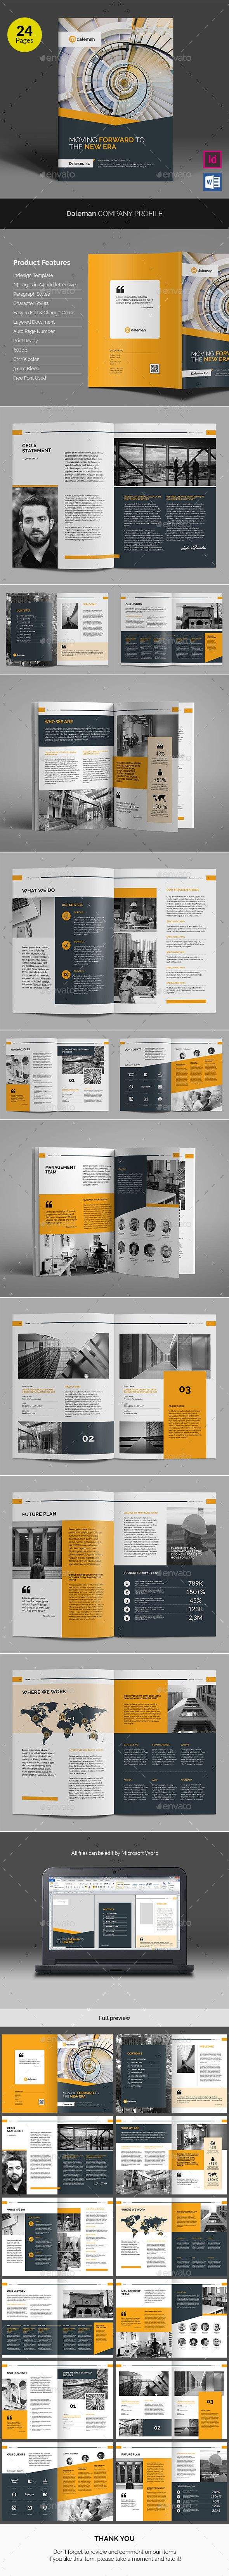 Daleman Company Profile v02 - Corporate Brochures. Download link: https://graphicriver.net/item/daleman-company-profile-v02/17802281?ref=heriwibowo